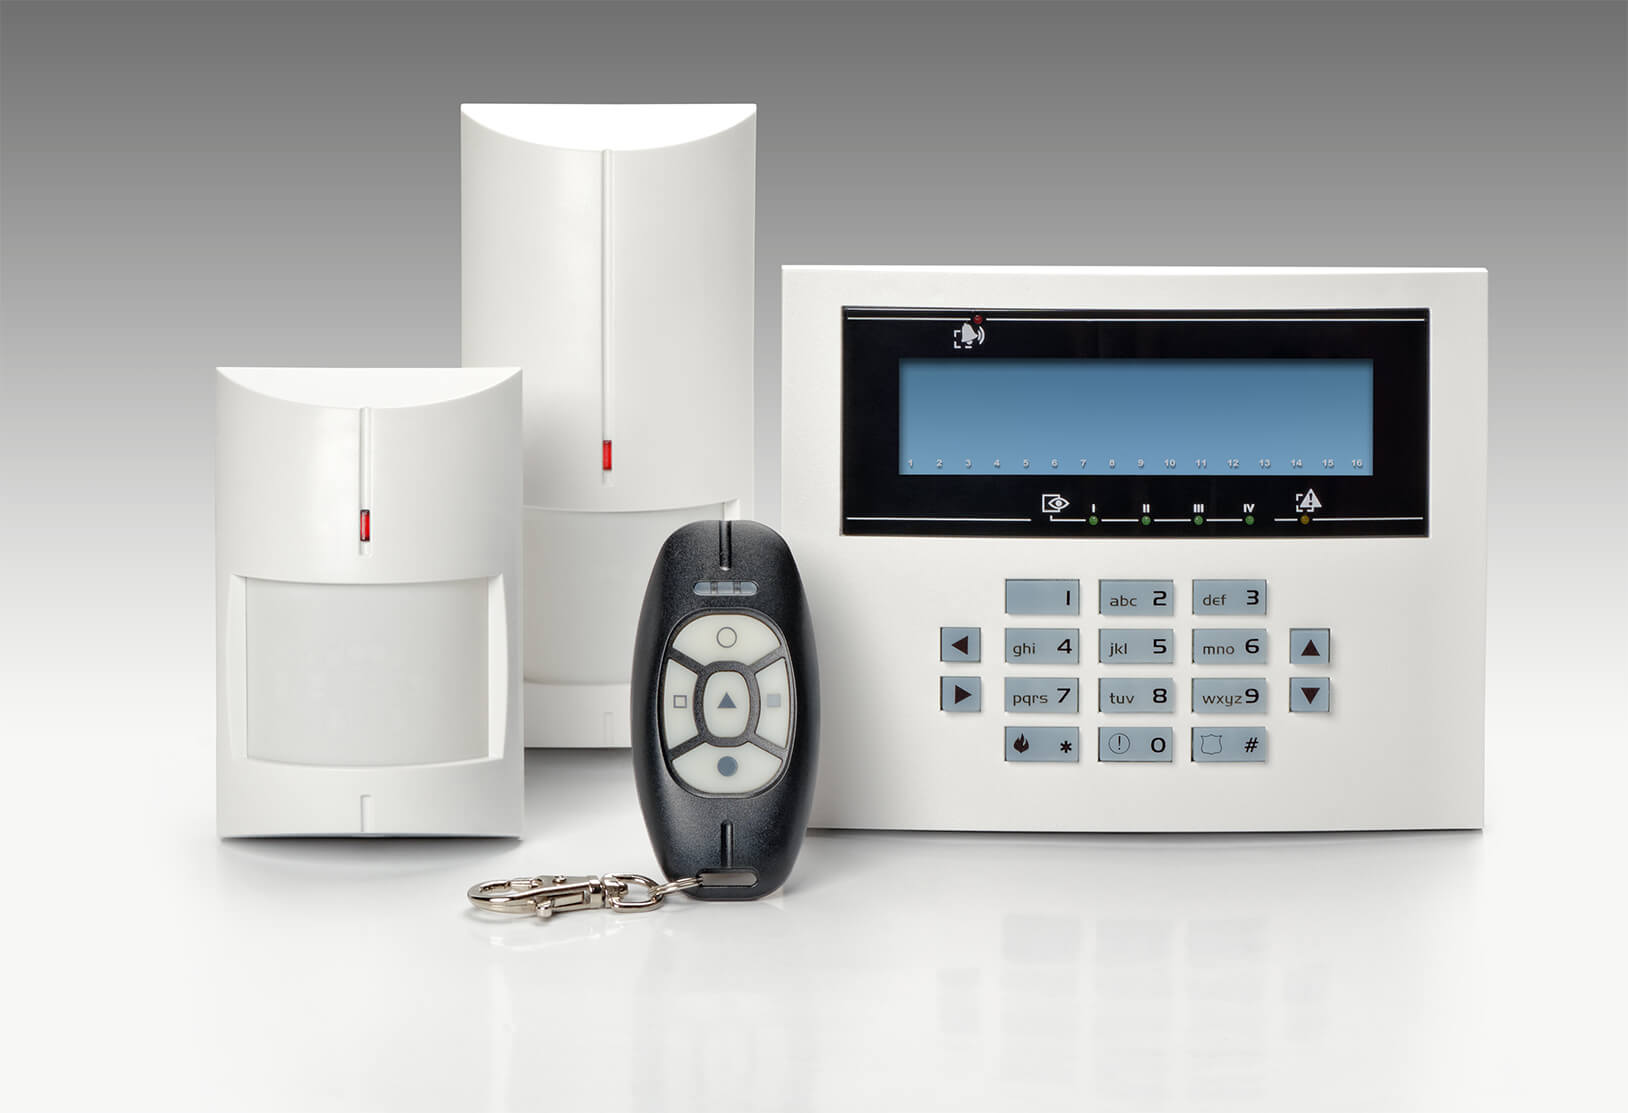 Business & Residential NACOSS Approved Burglar Alarms In Greenwich SE7 - Local Greenwich SE7 security company.Call 02078872244 - Dedicated to Safety & Security. Companies, shops and homes ..